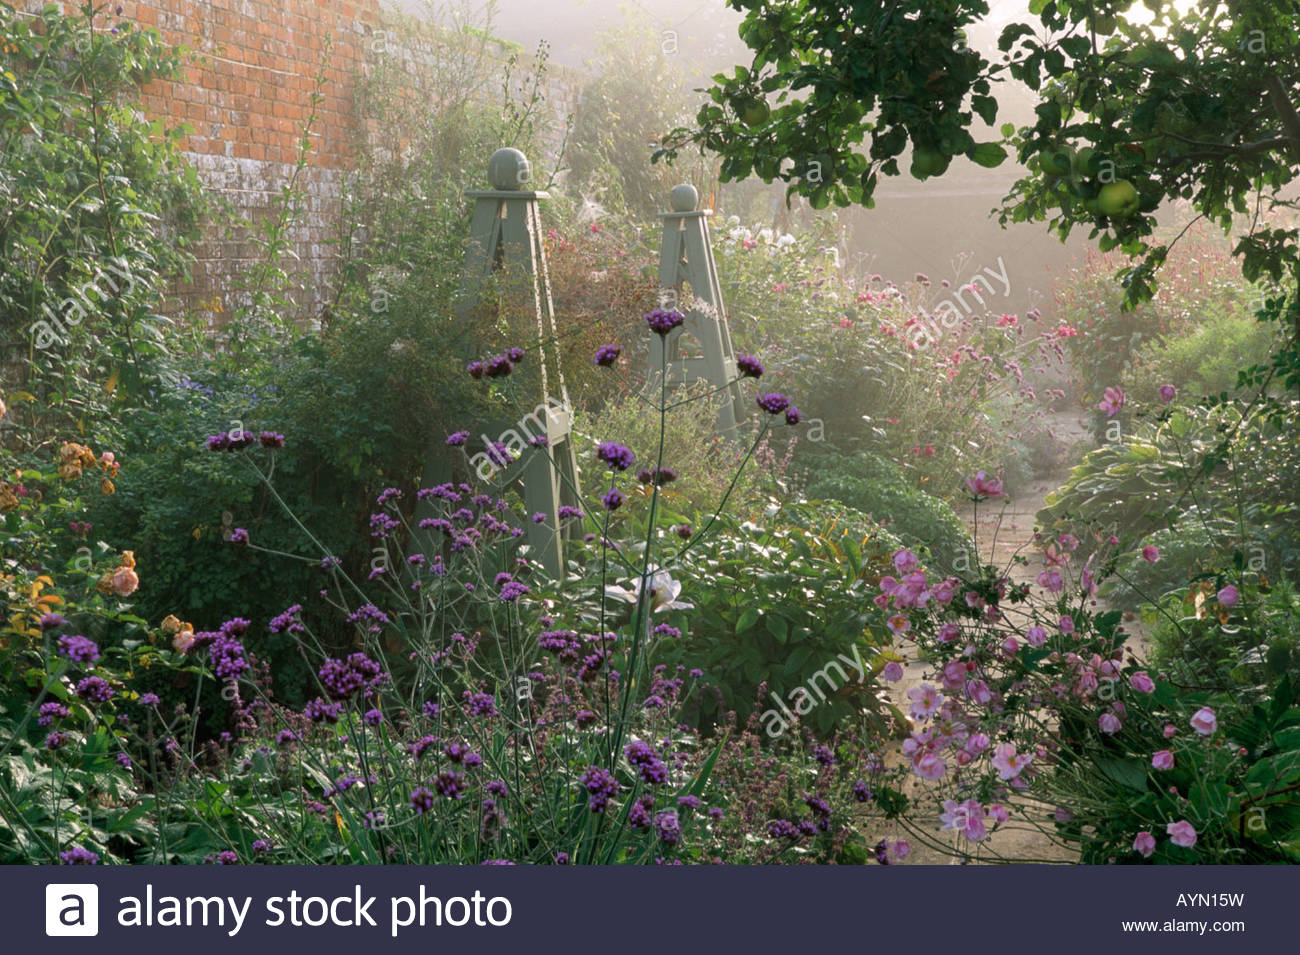 Sussex design fiona lawrenson mixed late summer border in walled stock photo royalty free image - Mixed style gardens ...